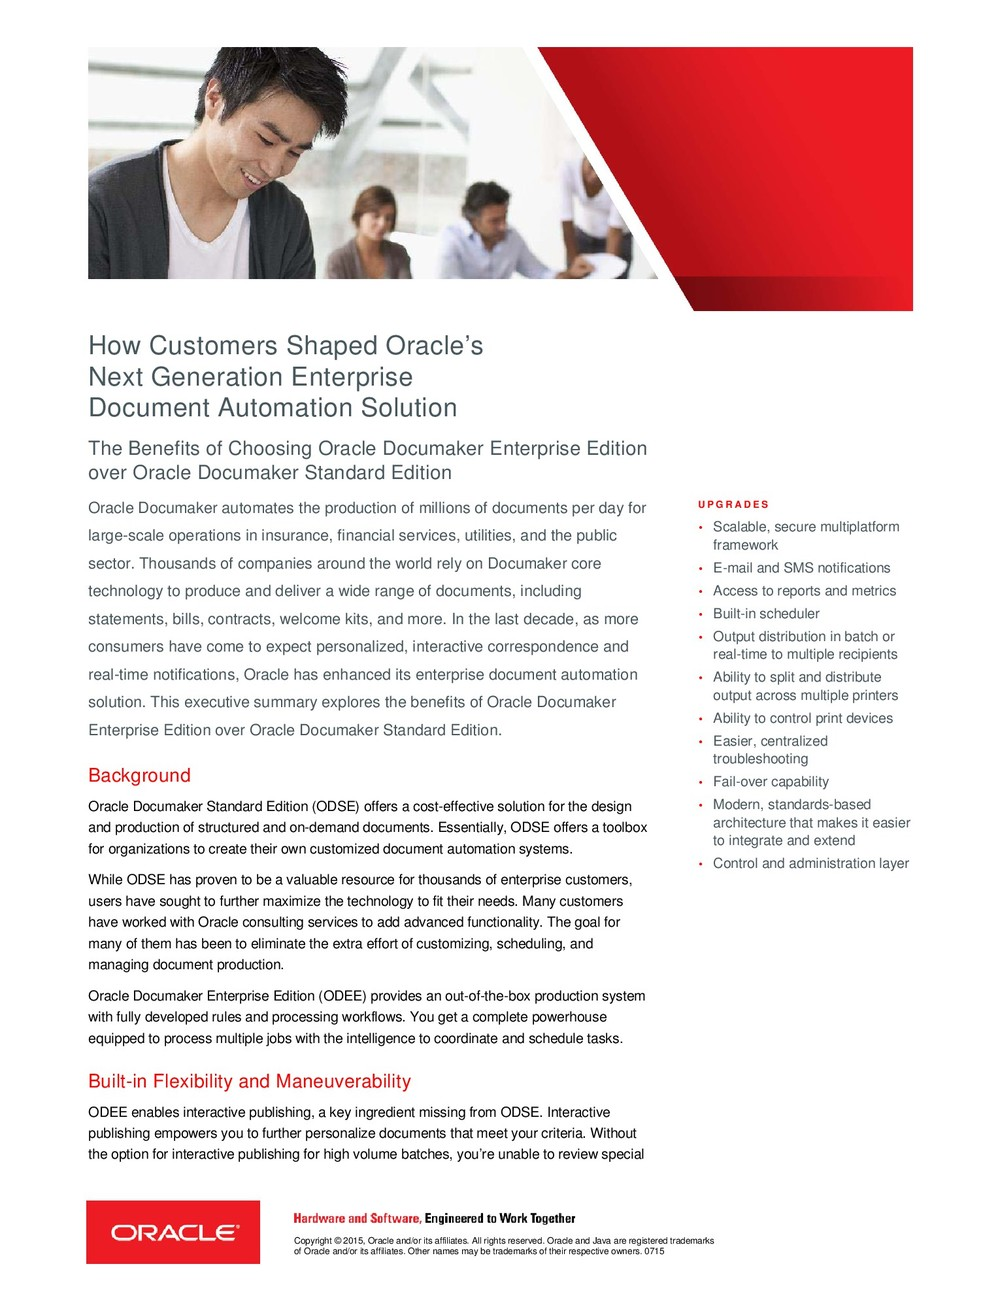 How Customers Shaped Oracle's Next Generation Enterprise Document Automation Solution